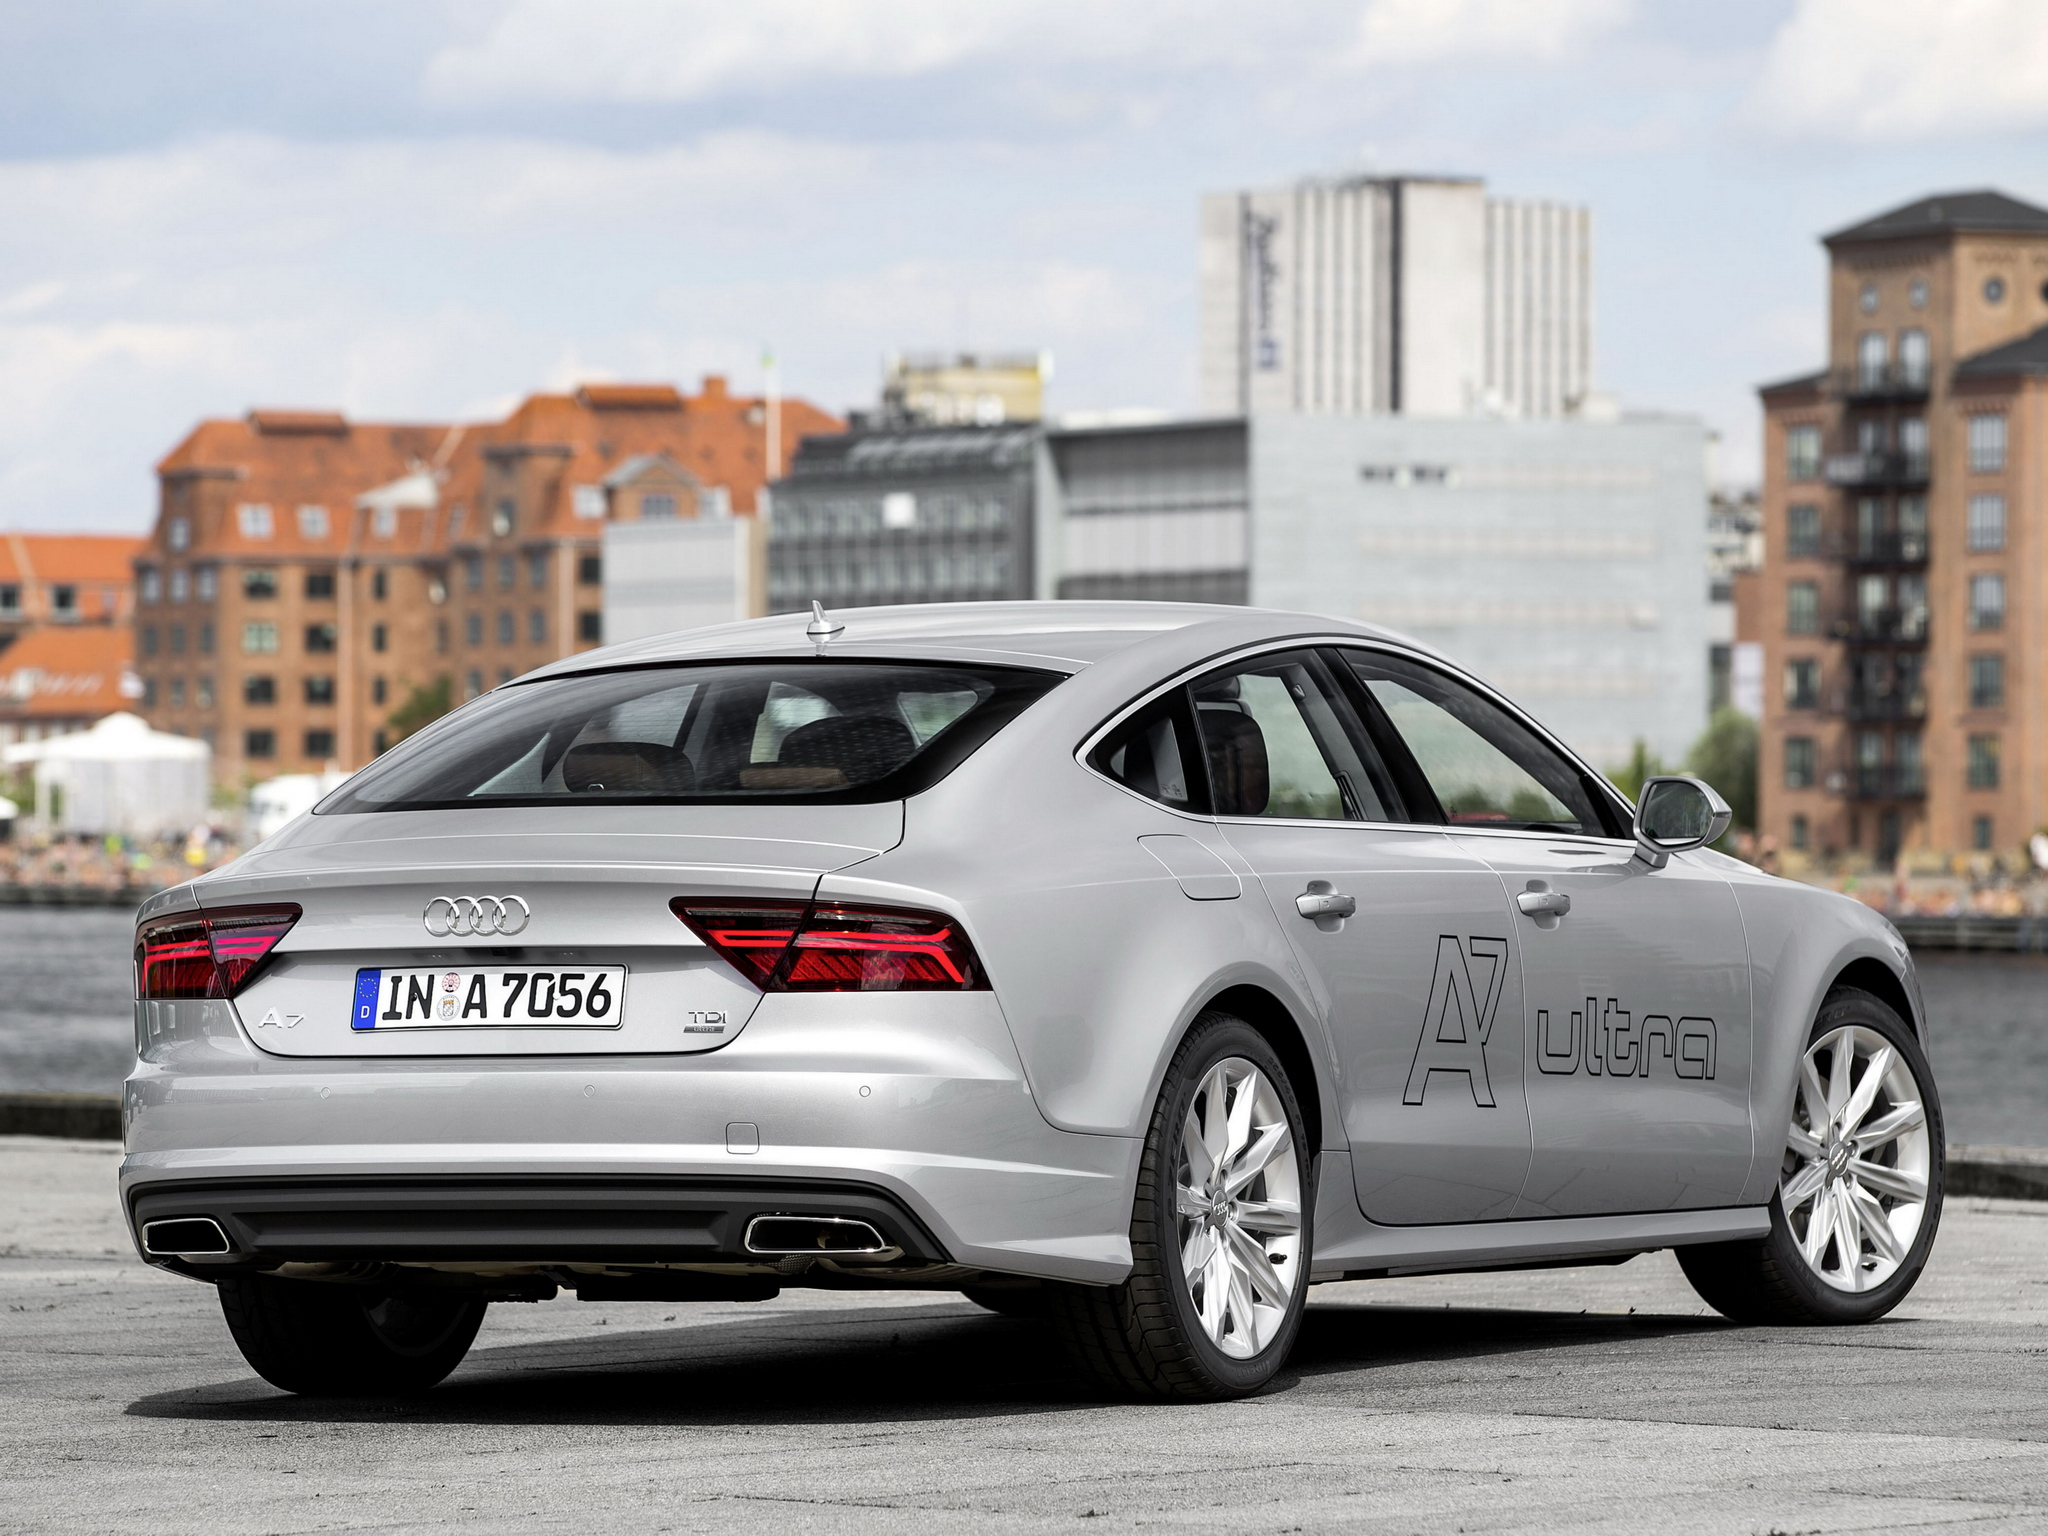 2014 audi a7 3 0 tdi ultra launched in germany details and pricing autoevolution. Black Bedroom Furniture Sets. Home Design Ideas